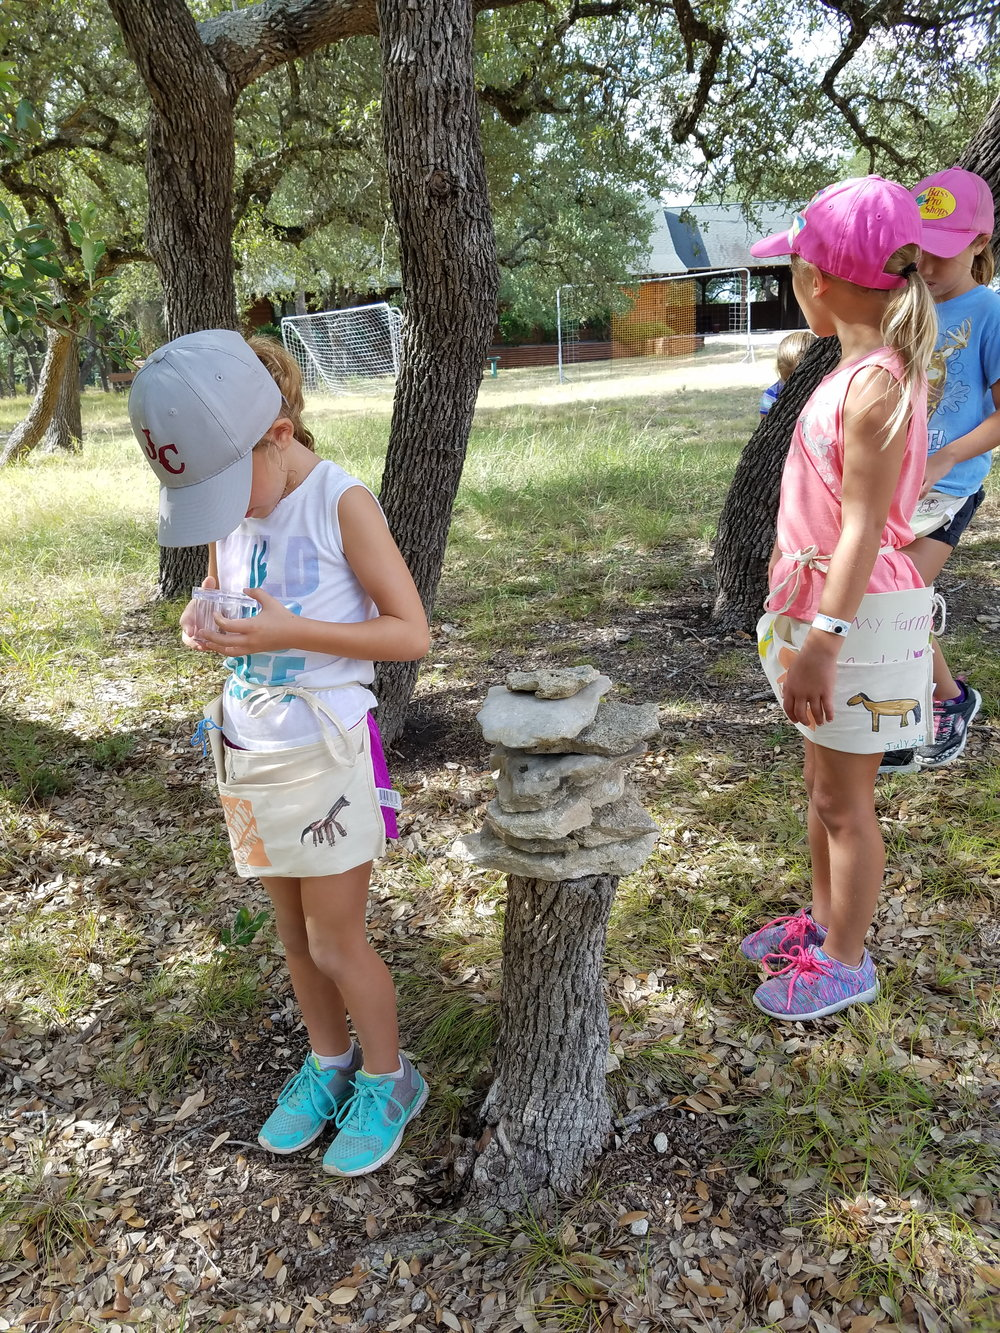 Bugs like to hide up high and down low, so the children carefully searched for all of their favorite hiding spots.